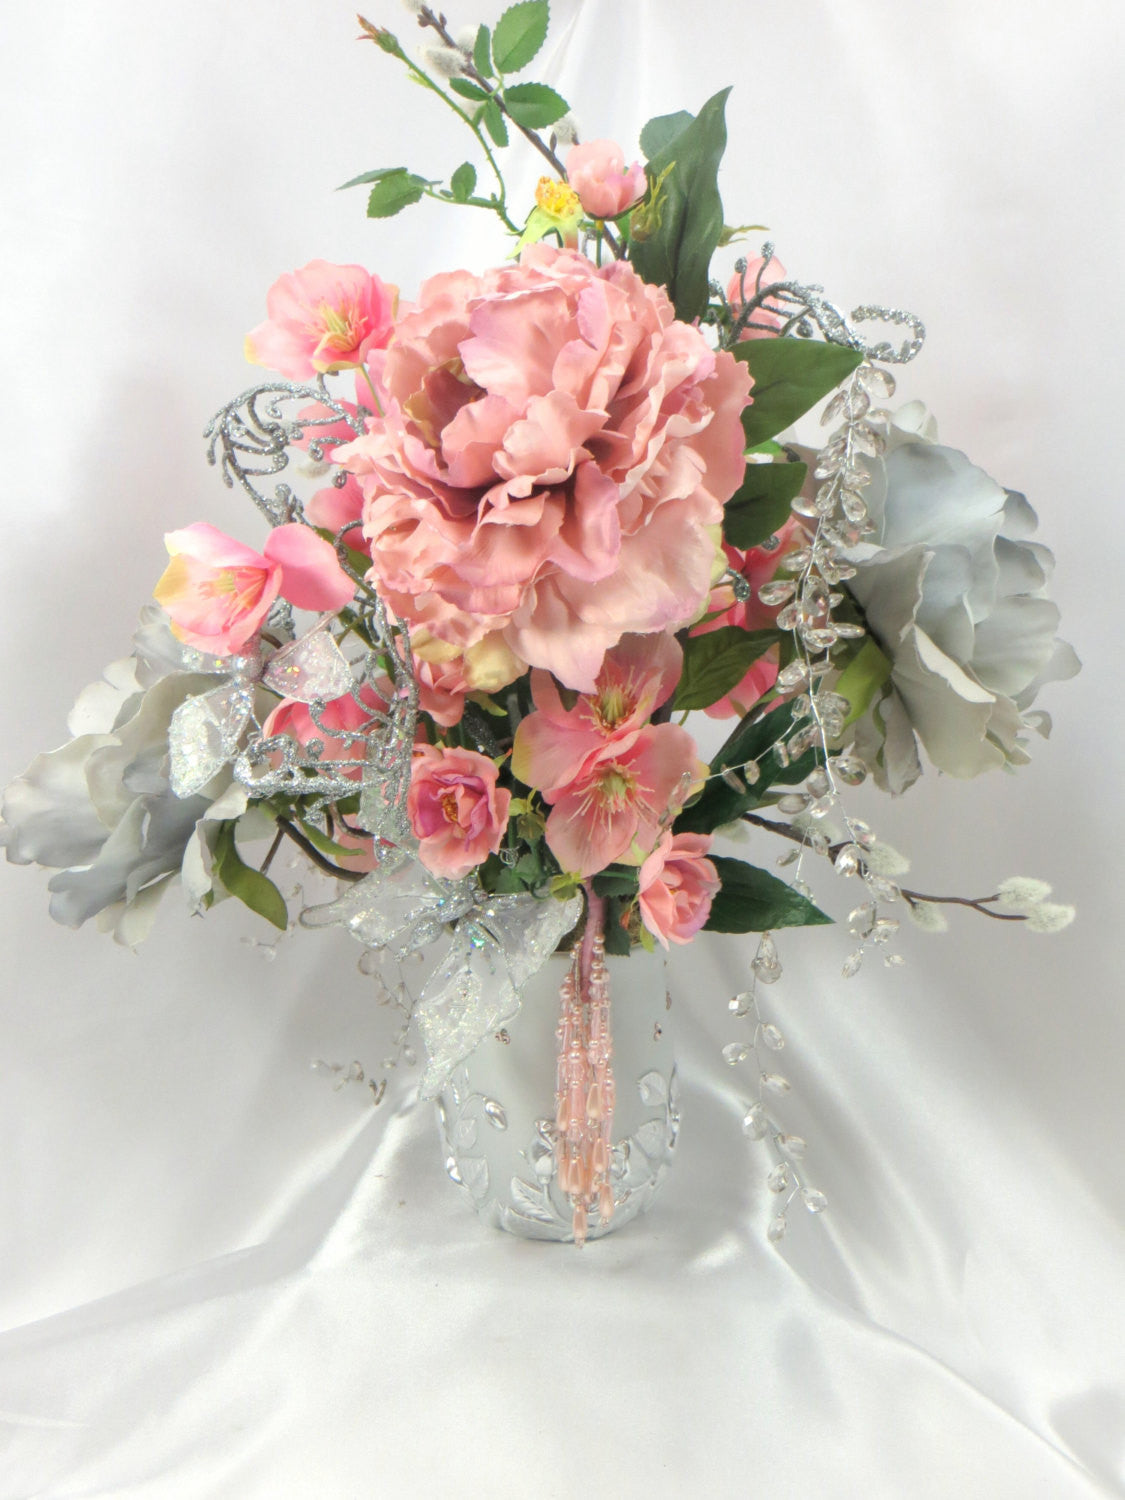 Pink and Gray Beaded Victorian Wedding Centerpiece Floral Arrangement - Odyssey Creations